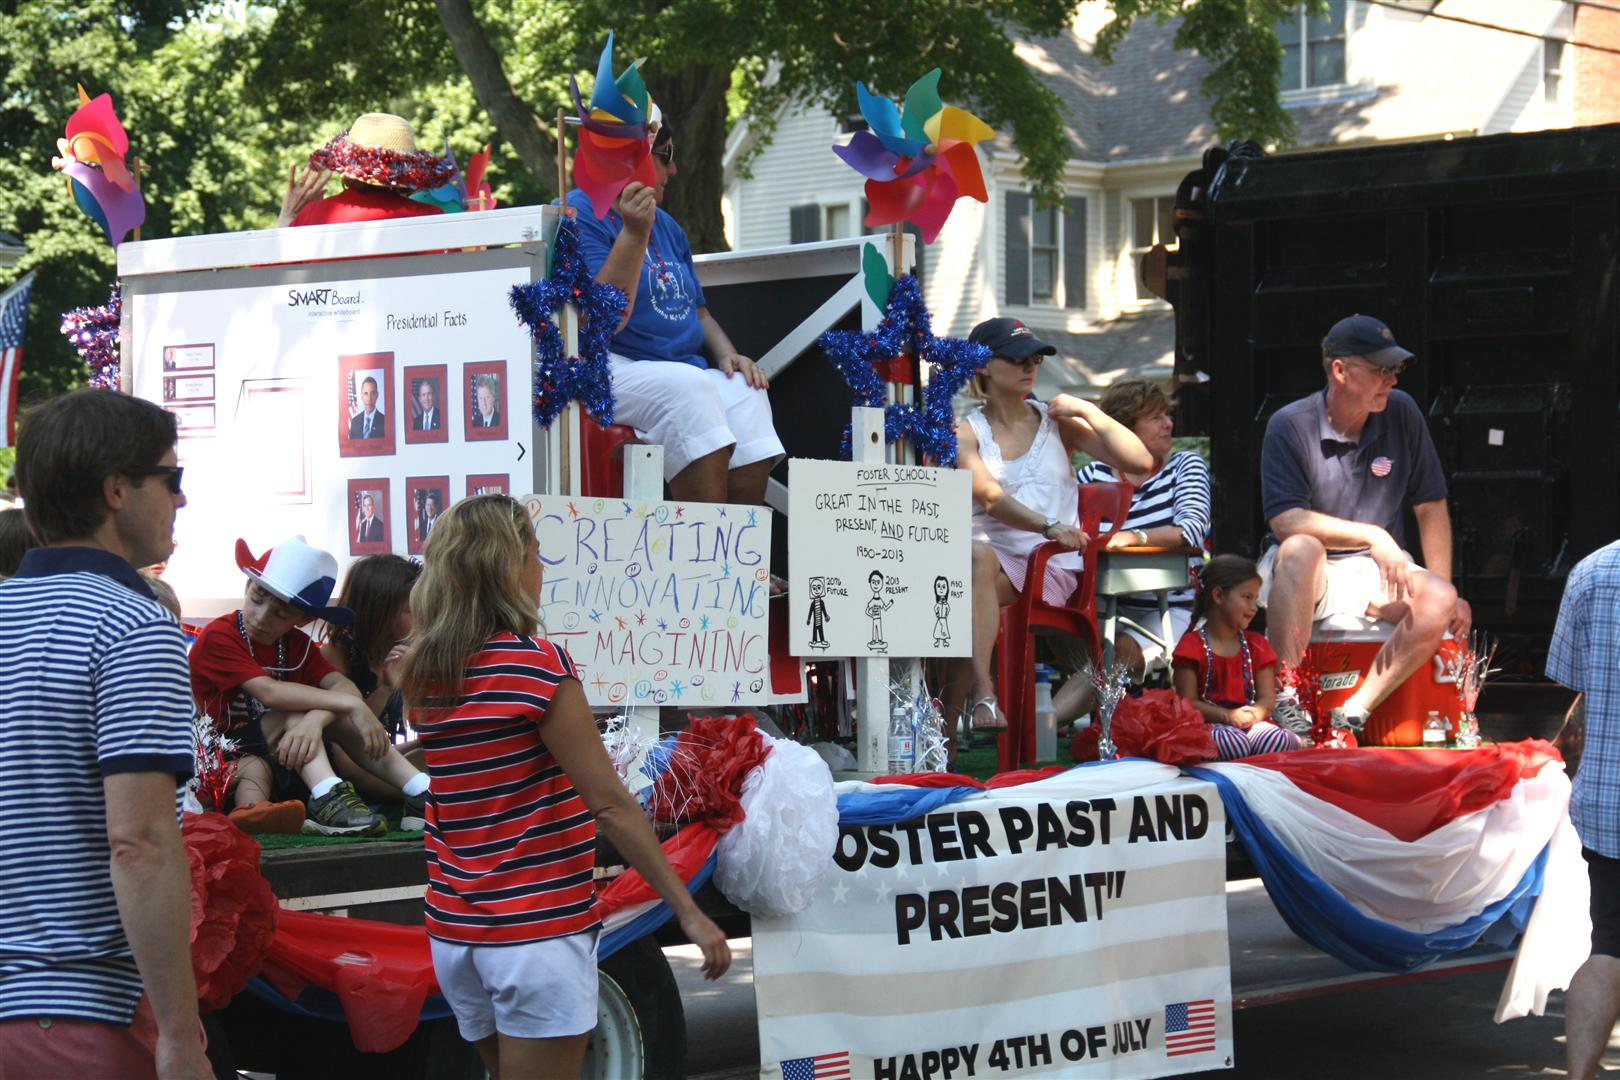 Foster Past and Present Float